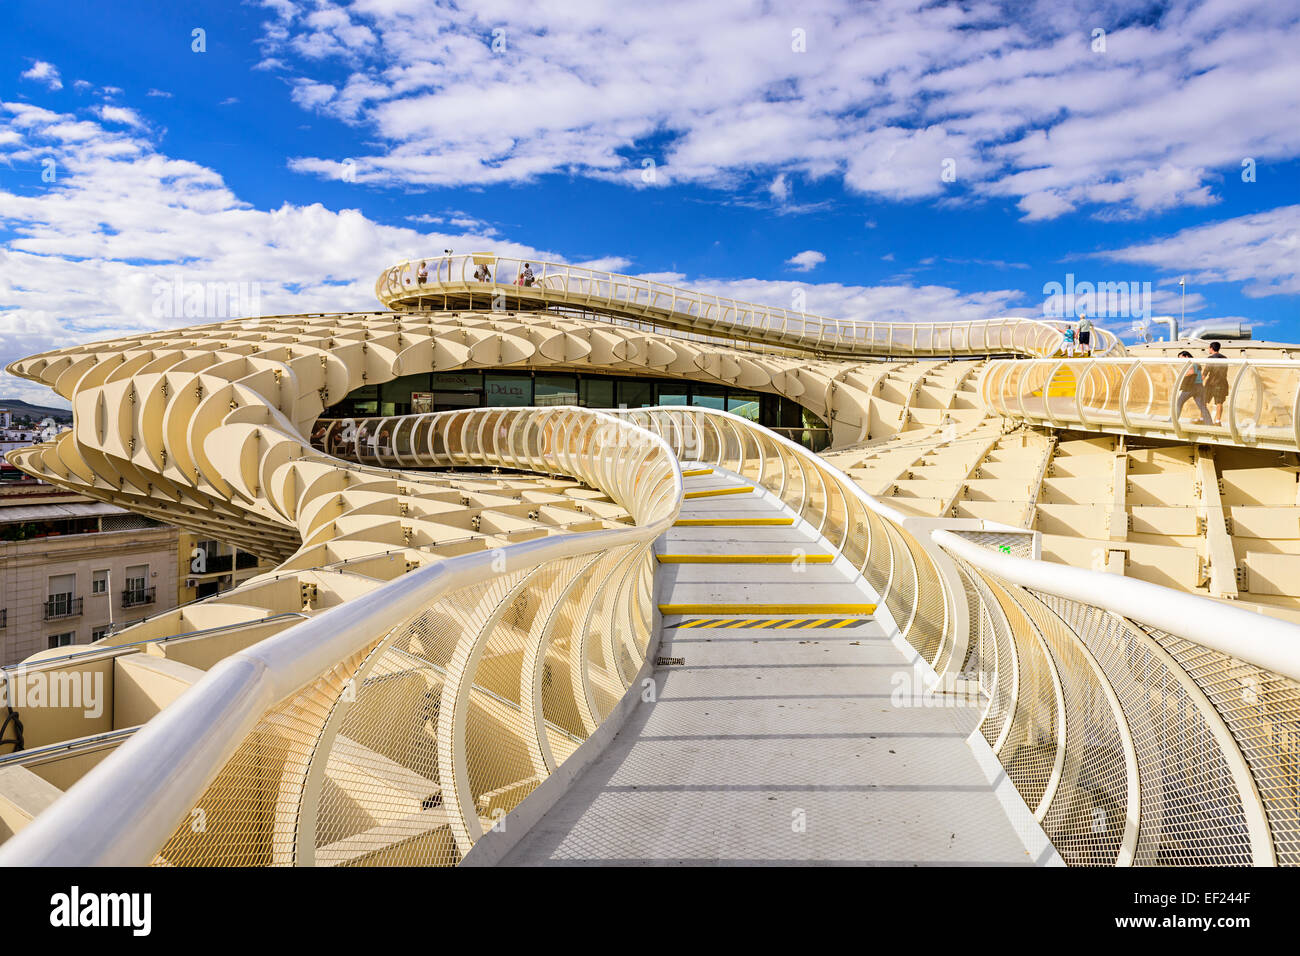 The Metropol Parasol walkway in Seville. Located in the old quarter, the structure opened to public controversey - Stock Image